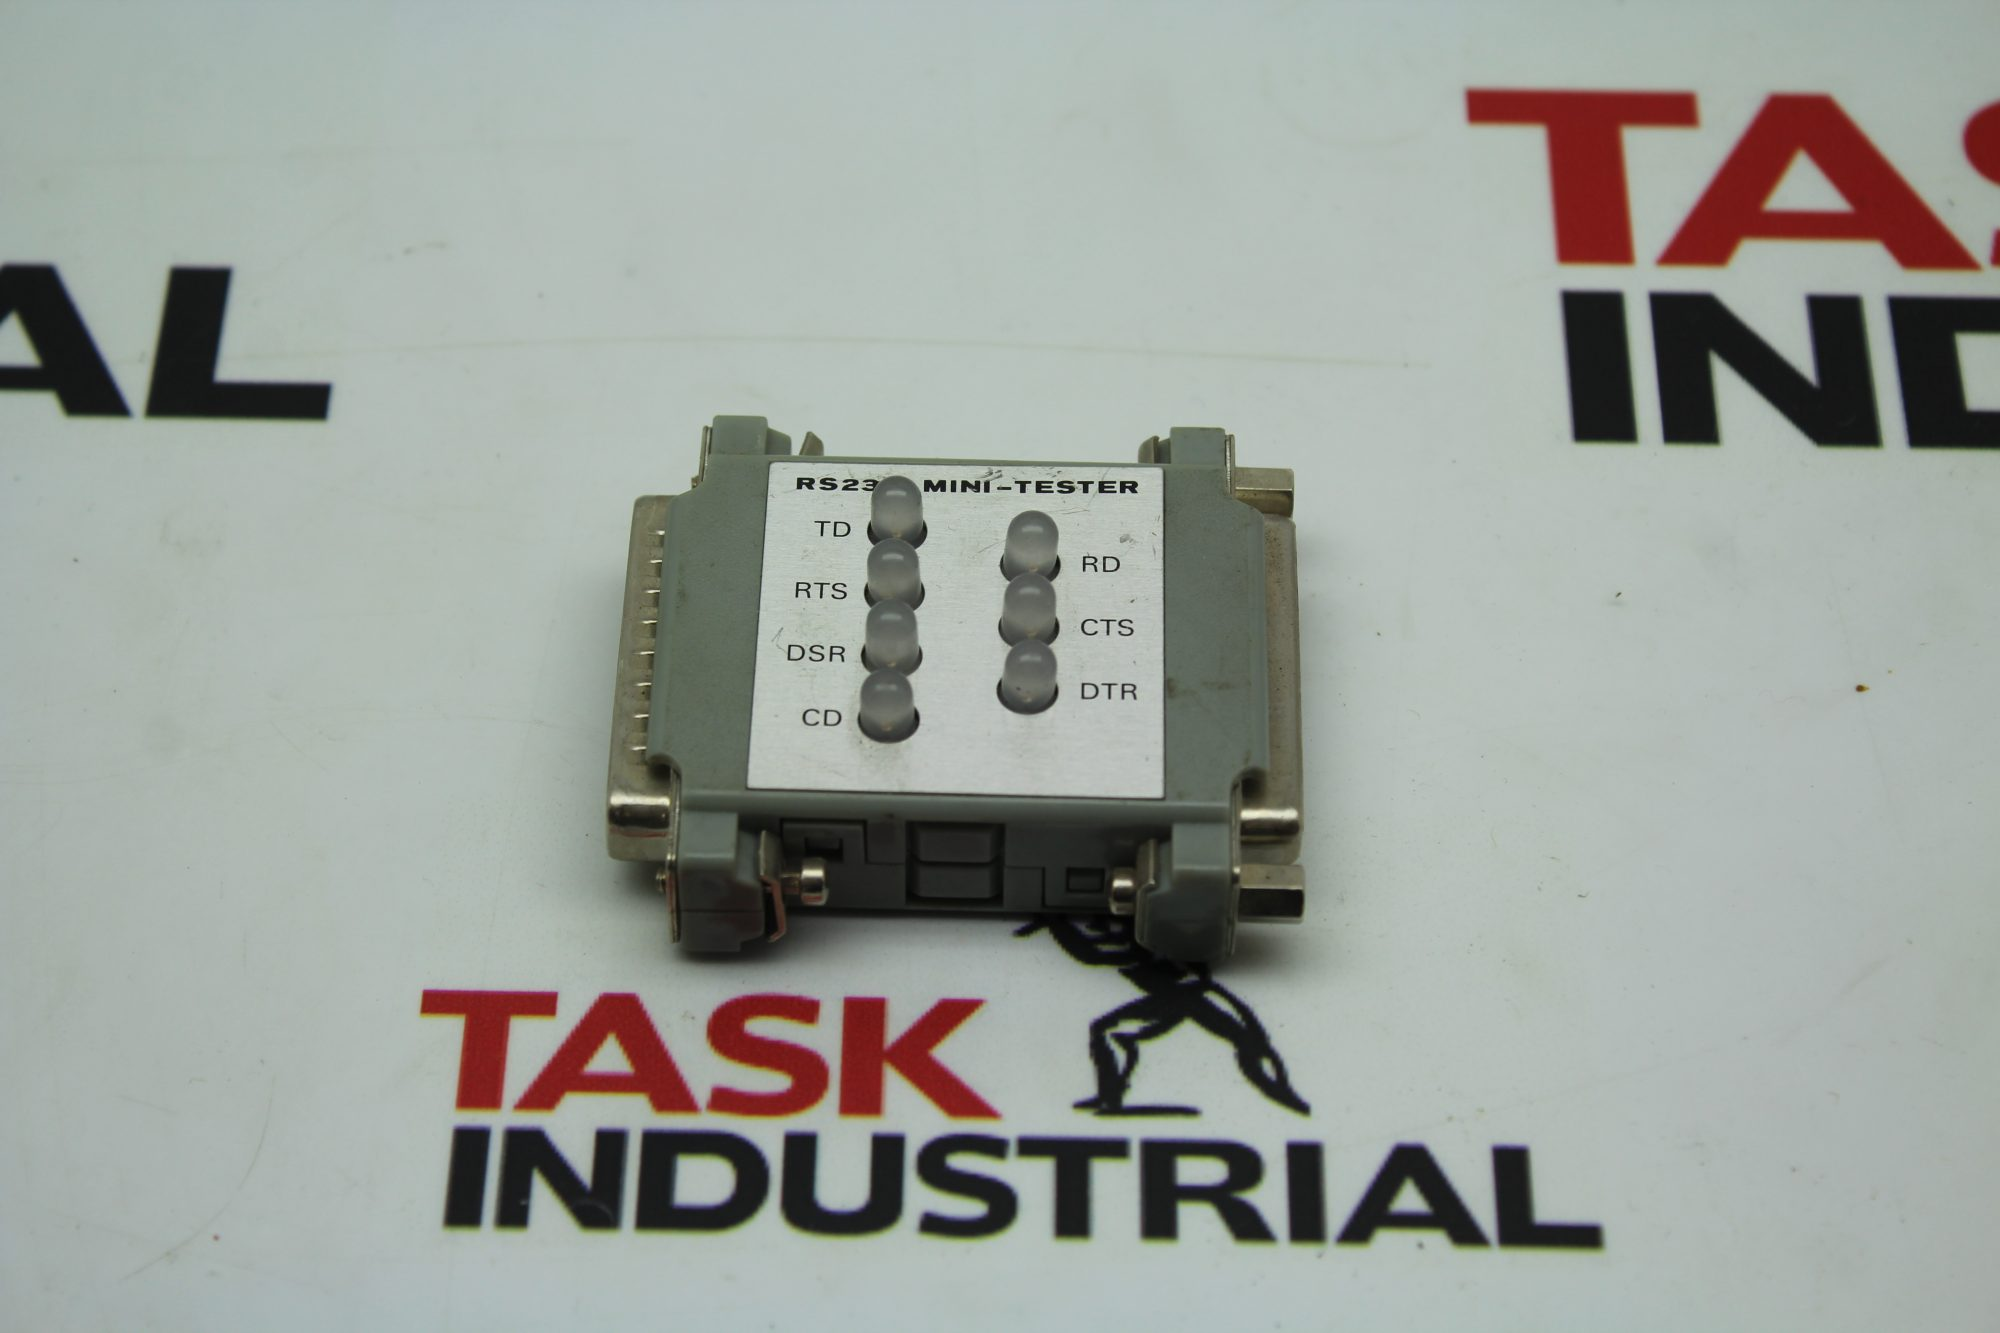 Serial Communications RS232 Mini-Tester